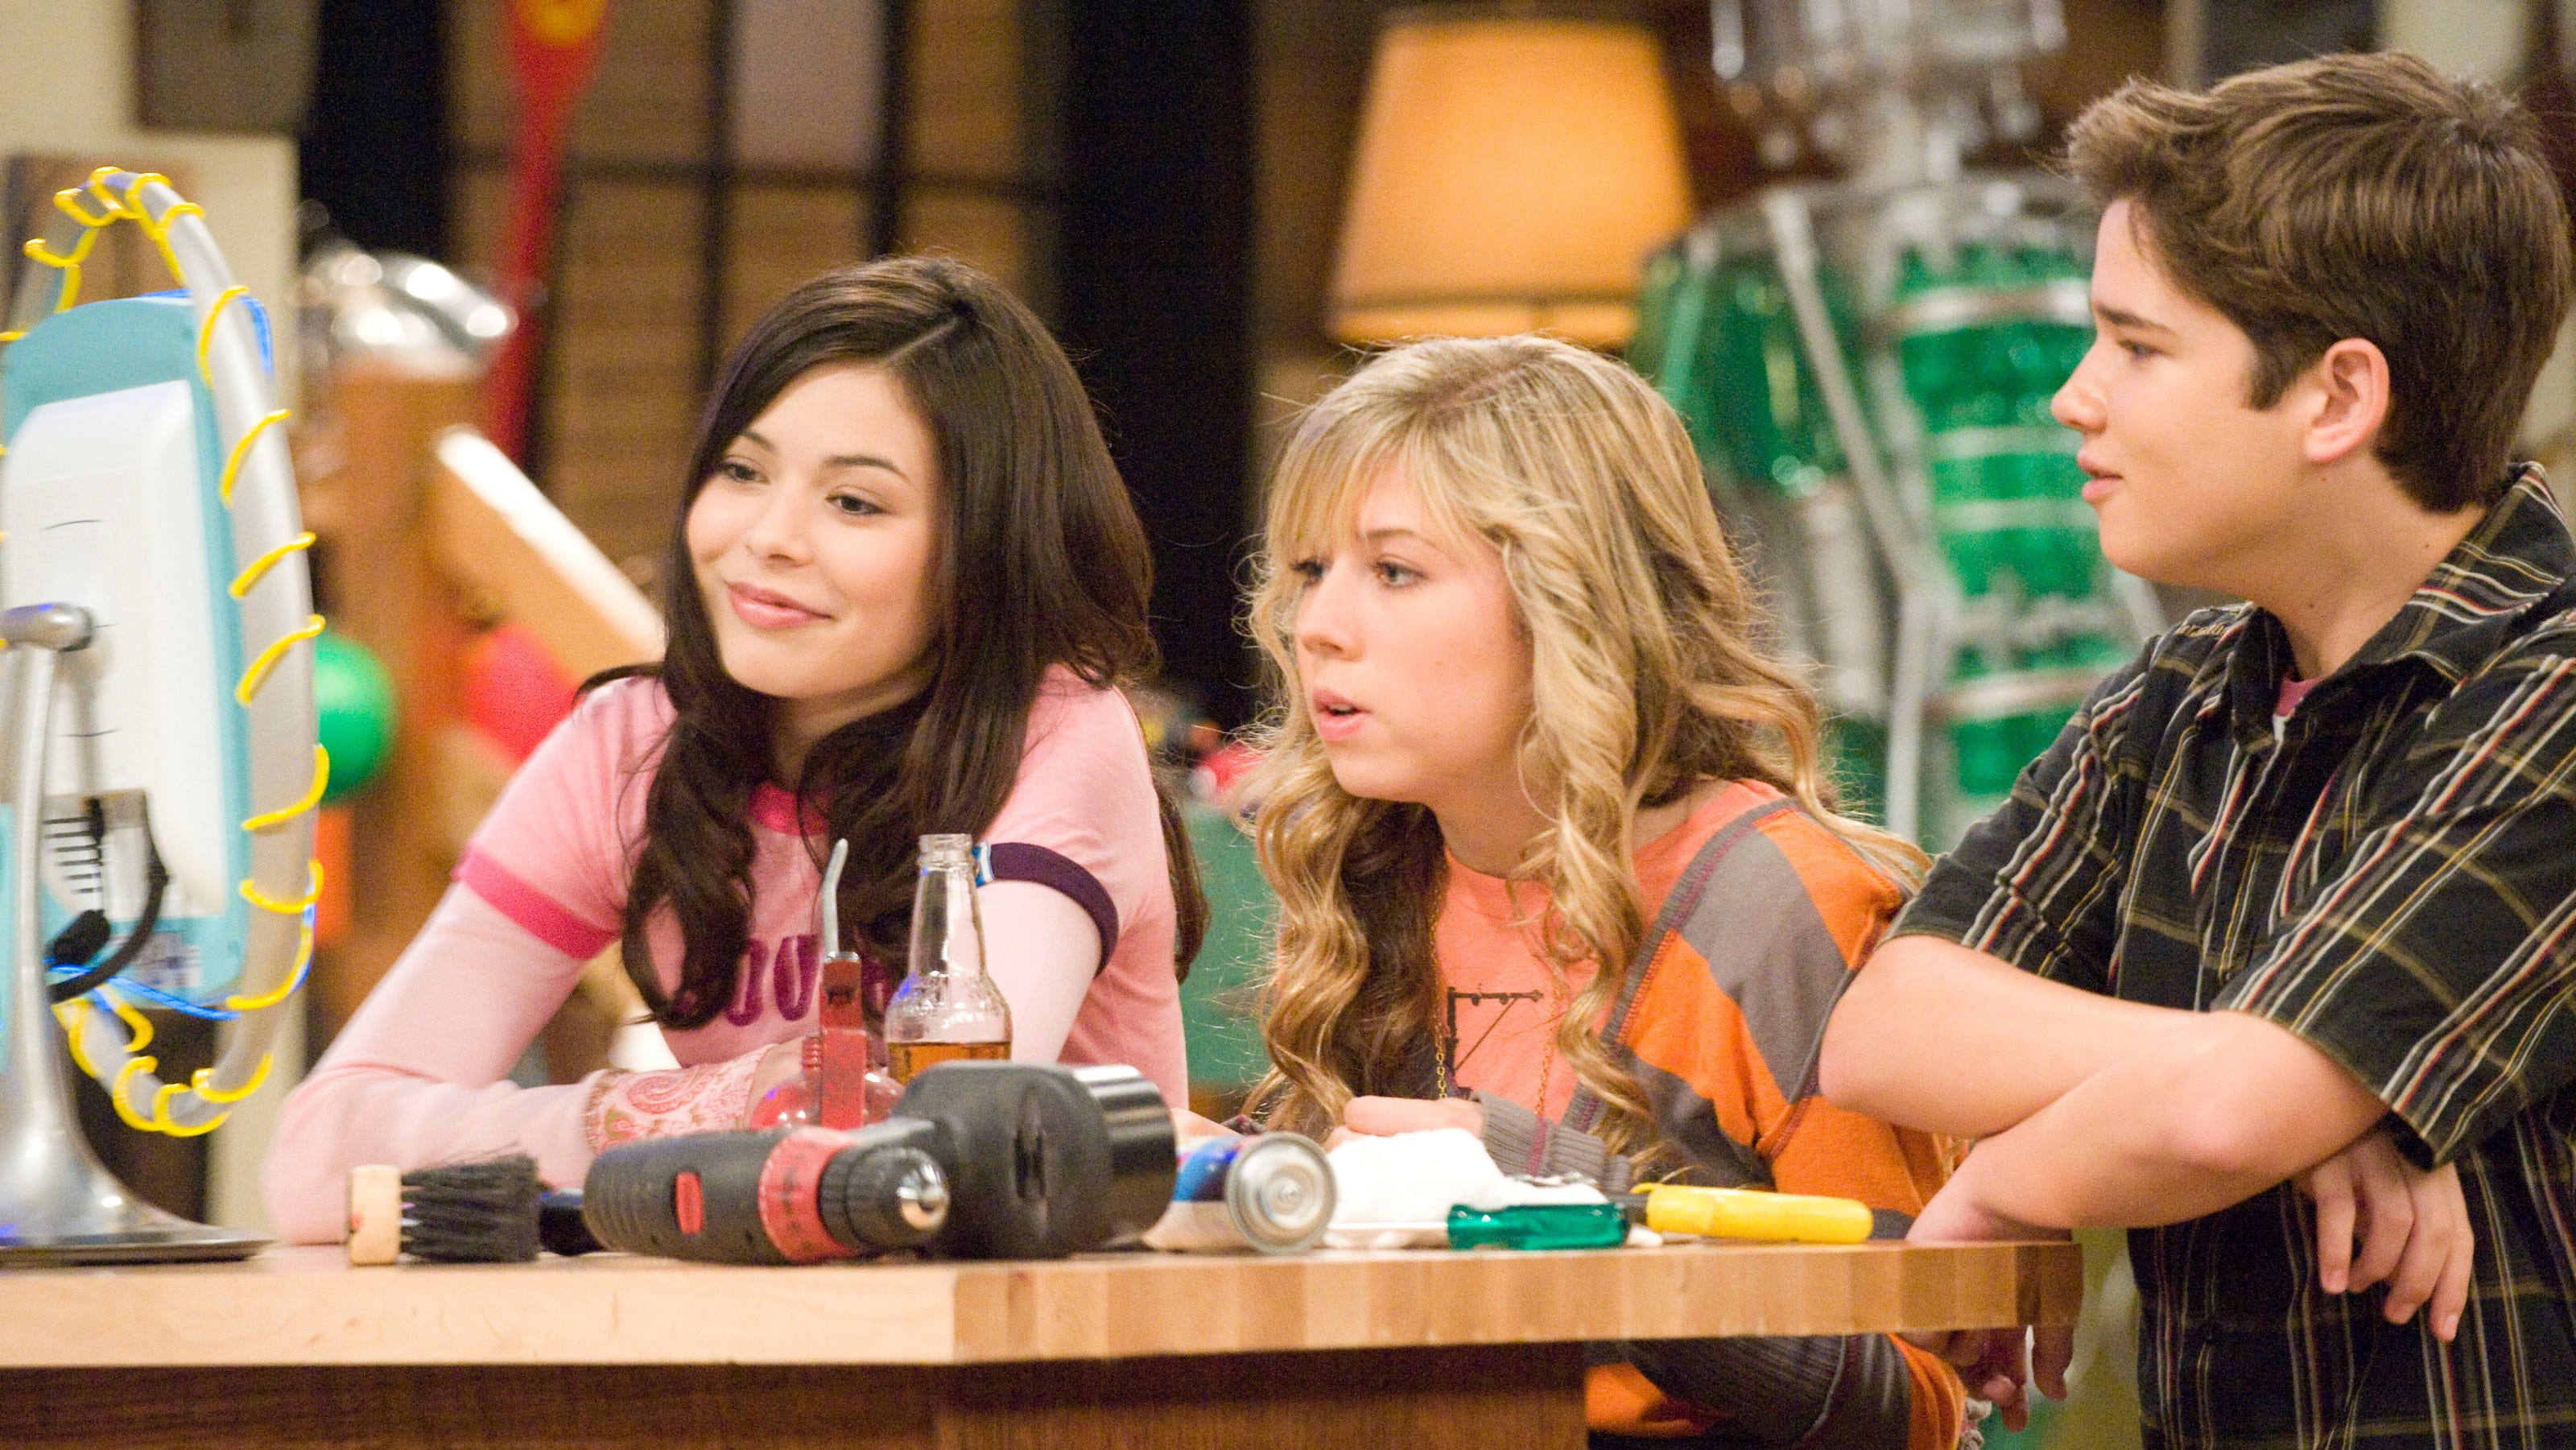 Icarly Reboot Ordered By Paramount With Original Cast Reports